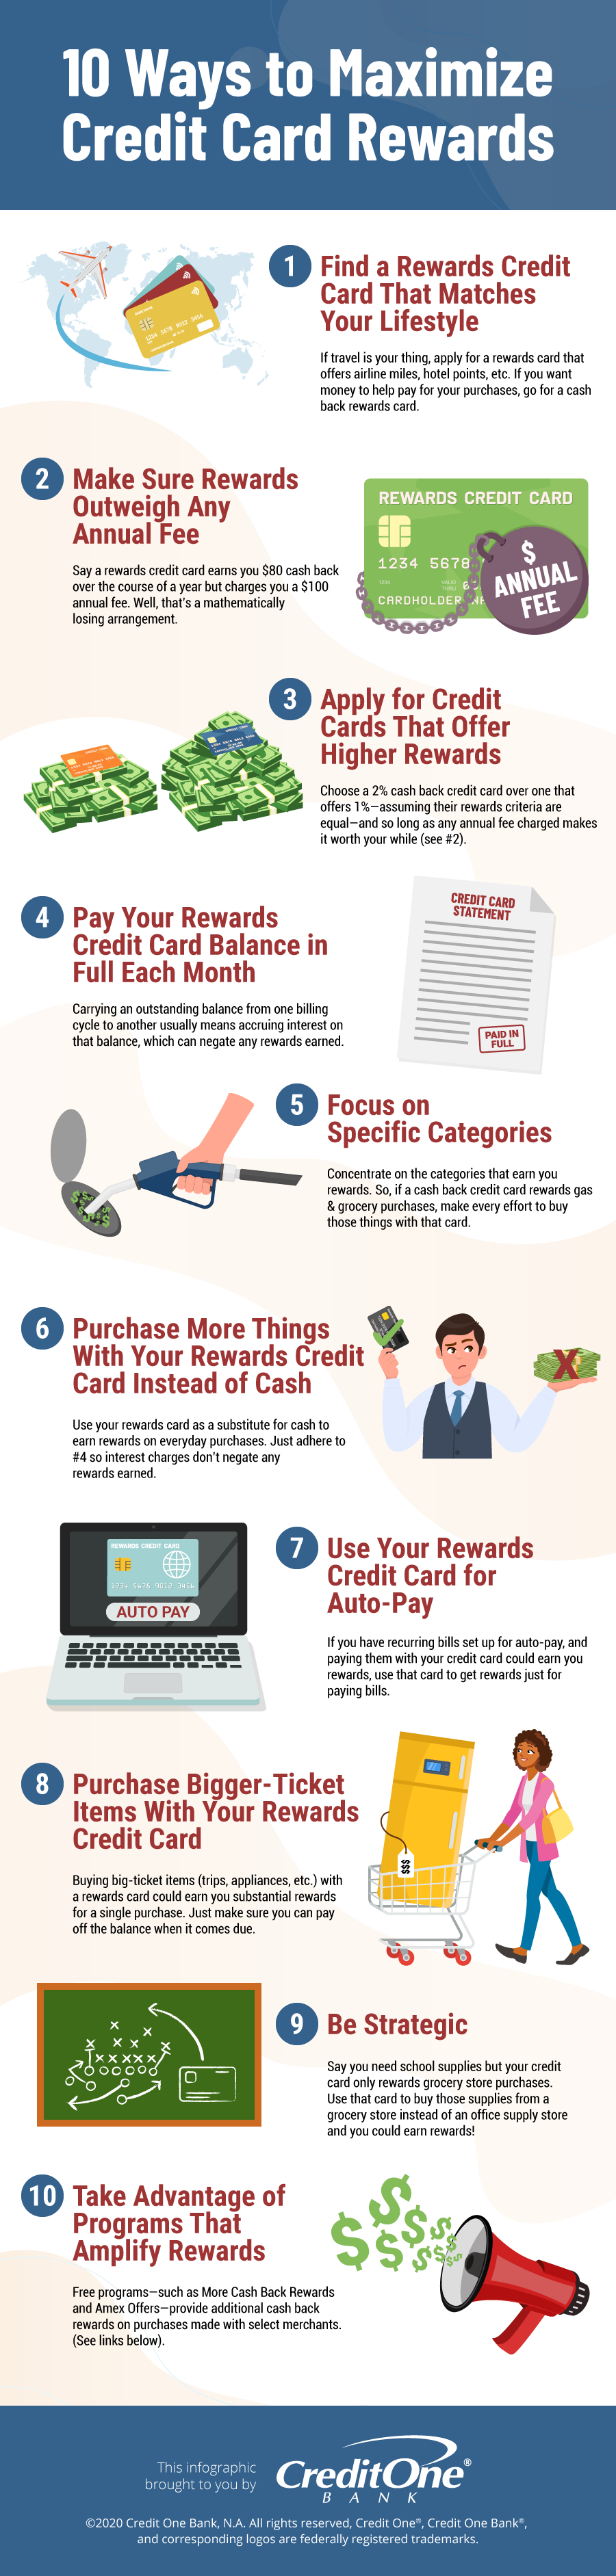 Tips for Maximizing Credit Card Rewards